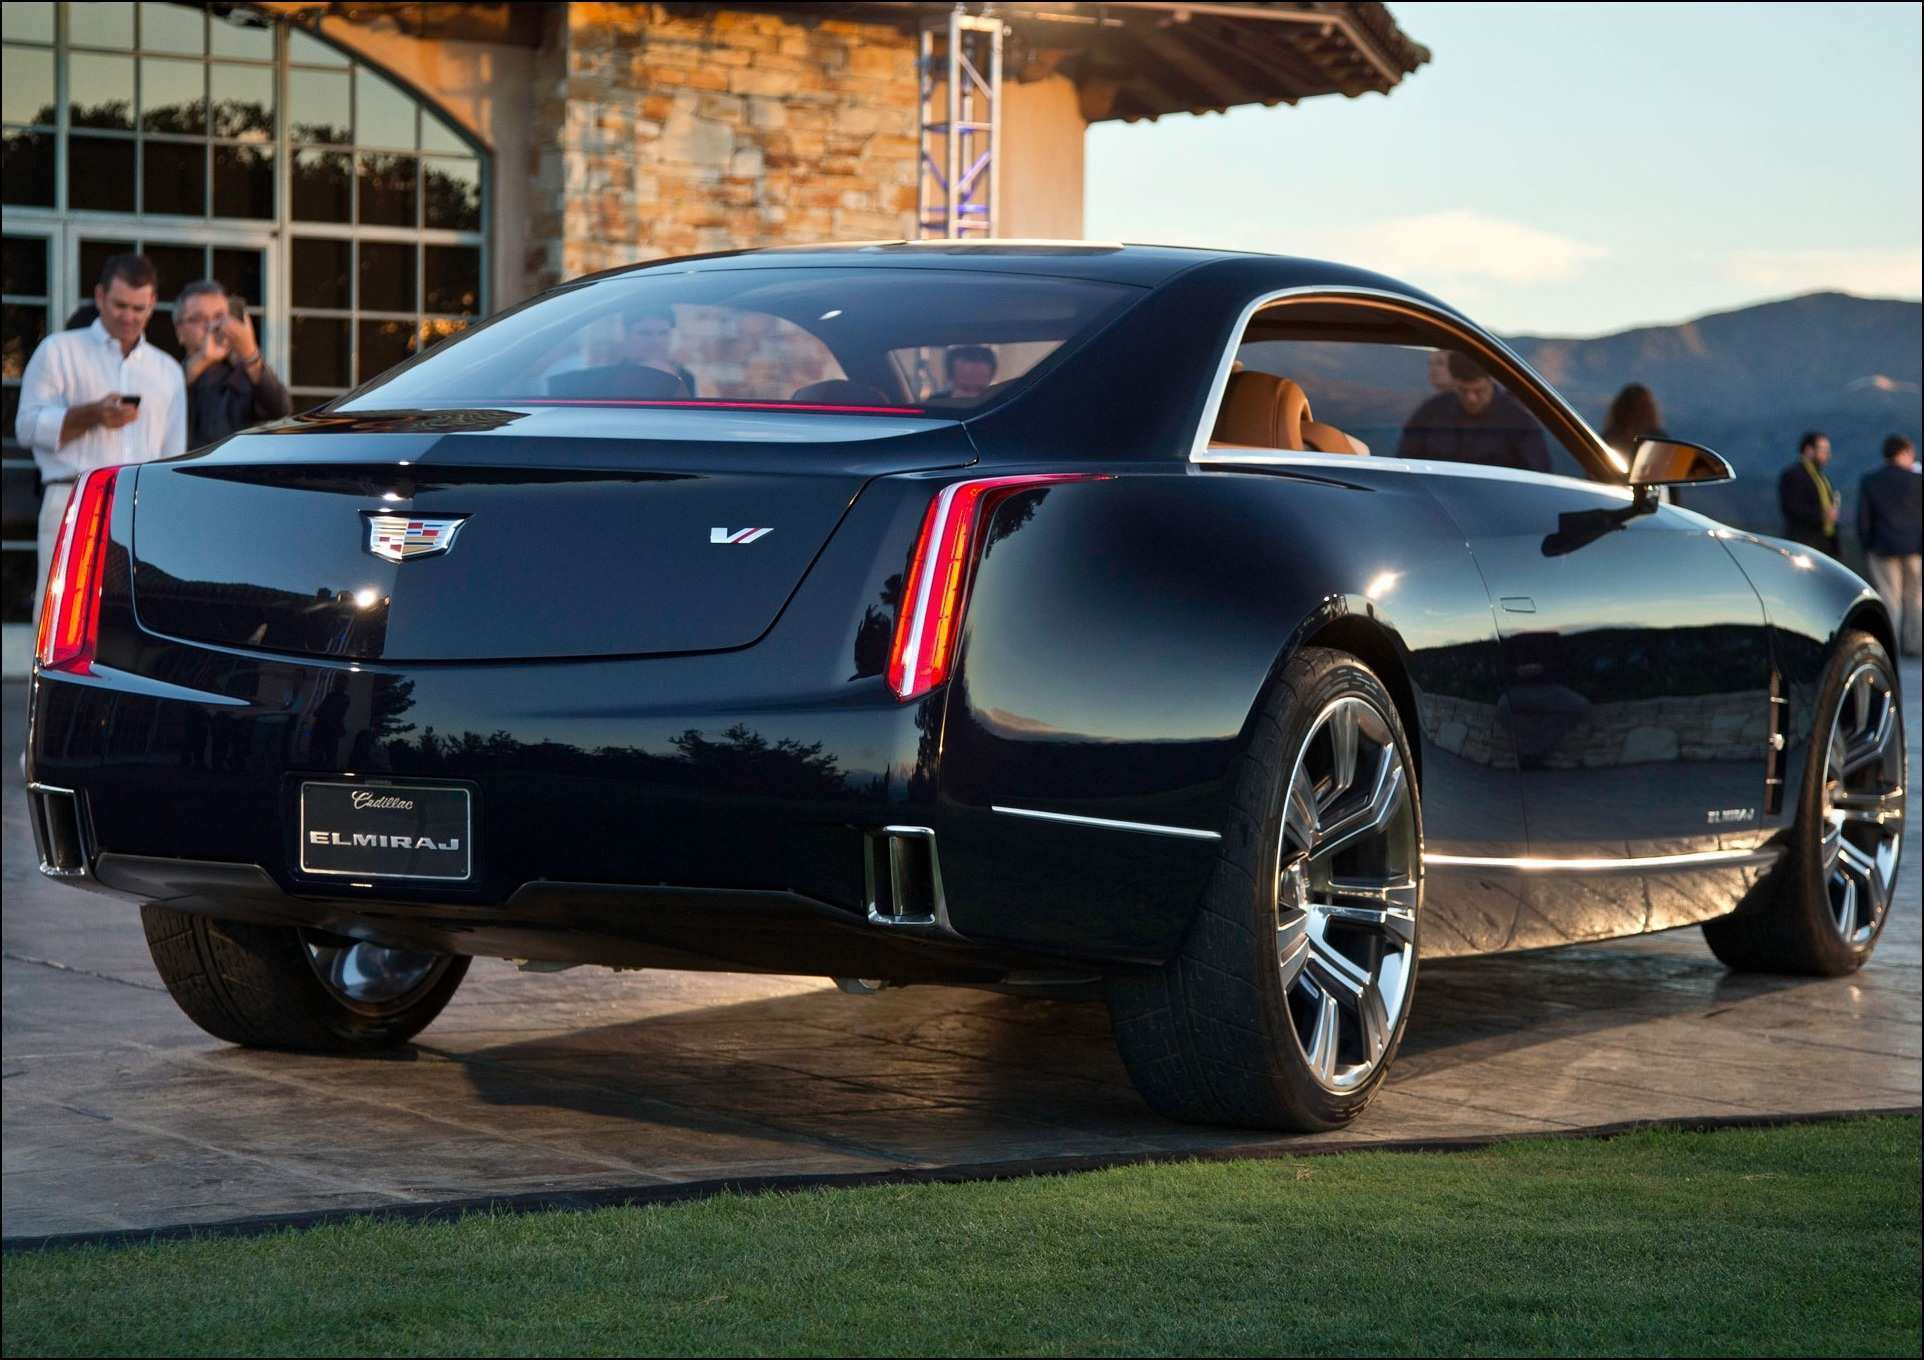 65 New 2020 Cadillac Deville Pictures